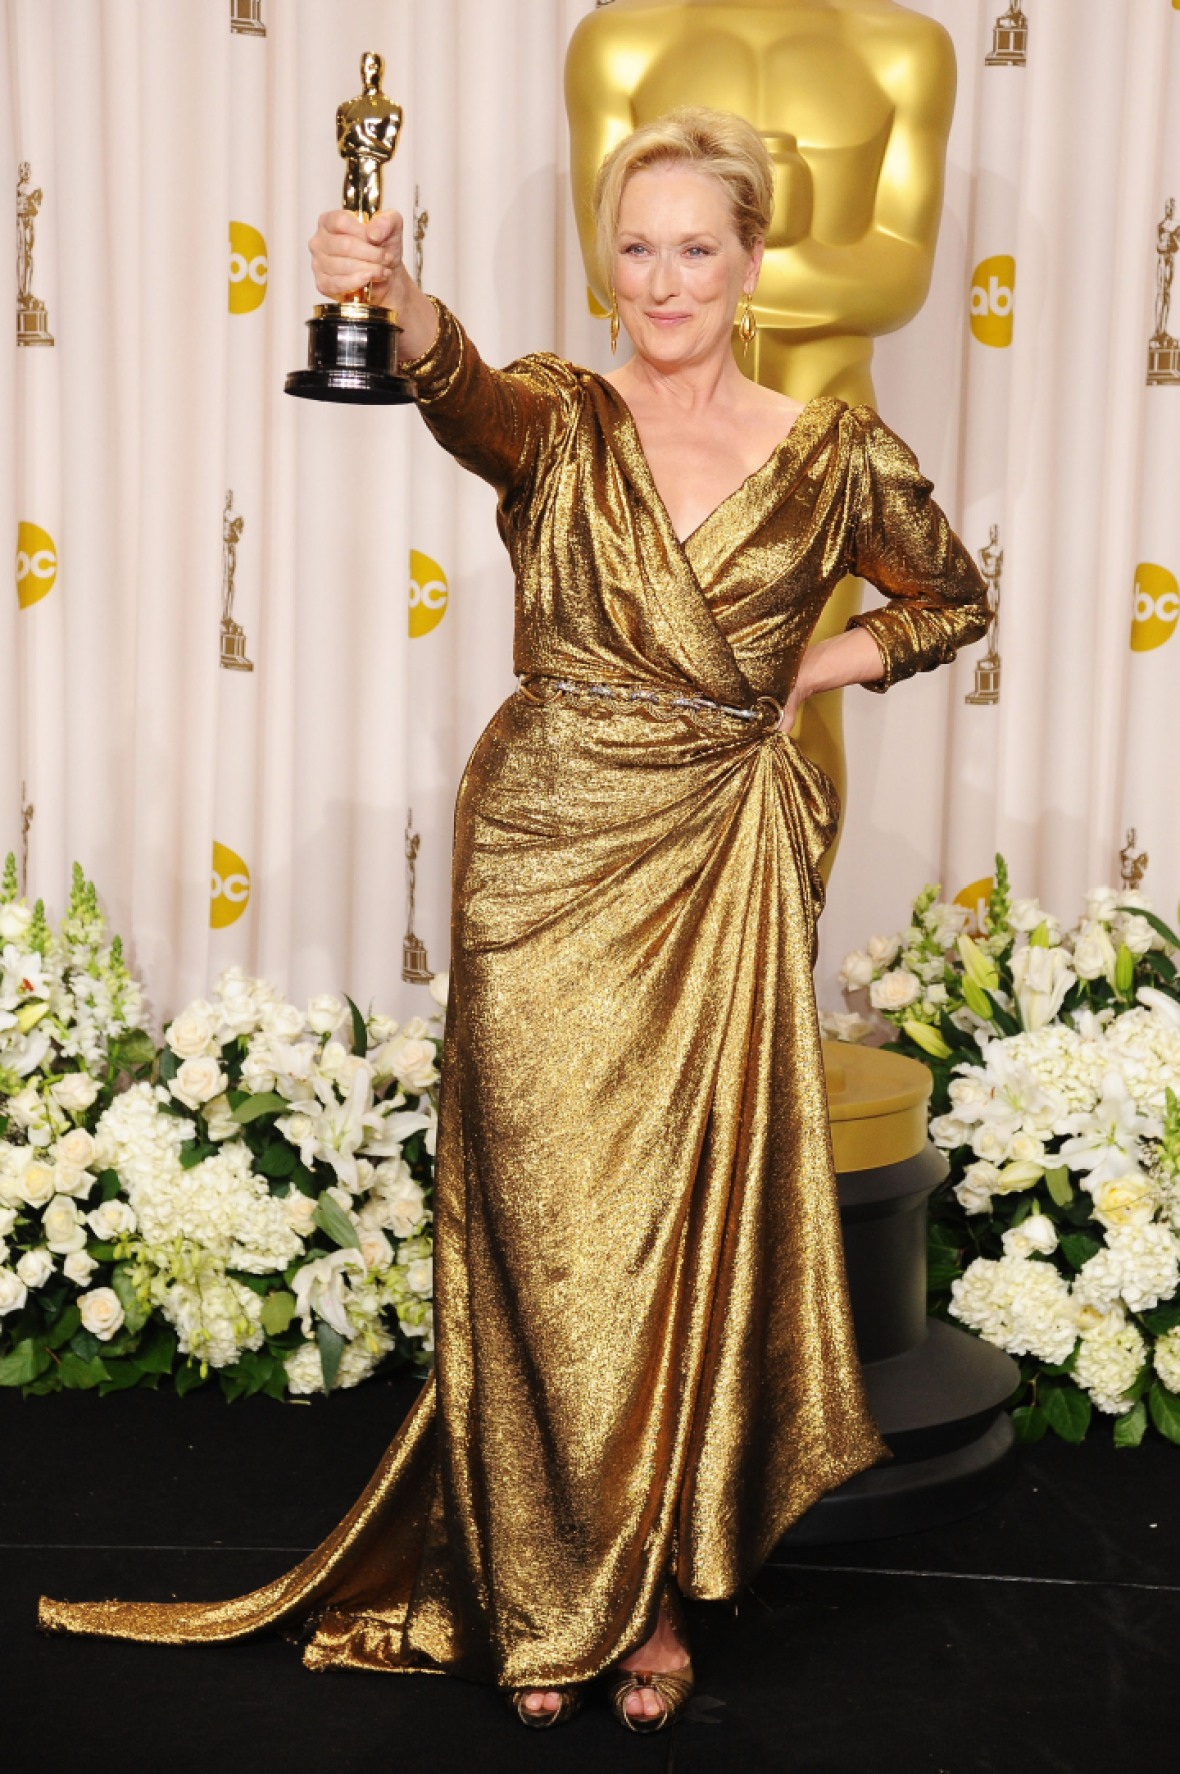 merl streep (getty images)